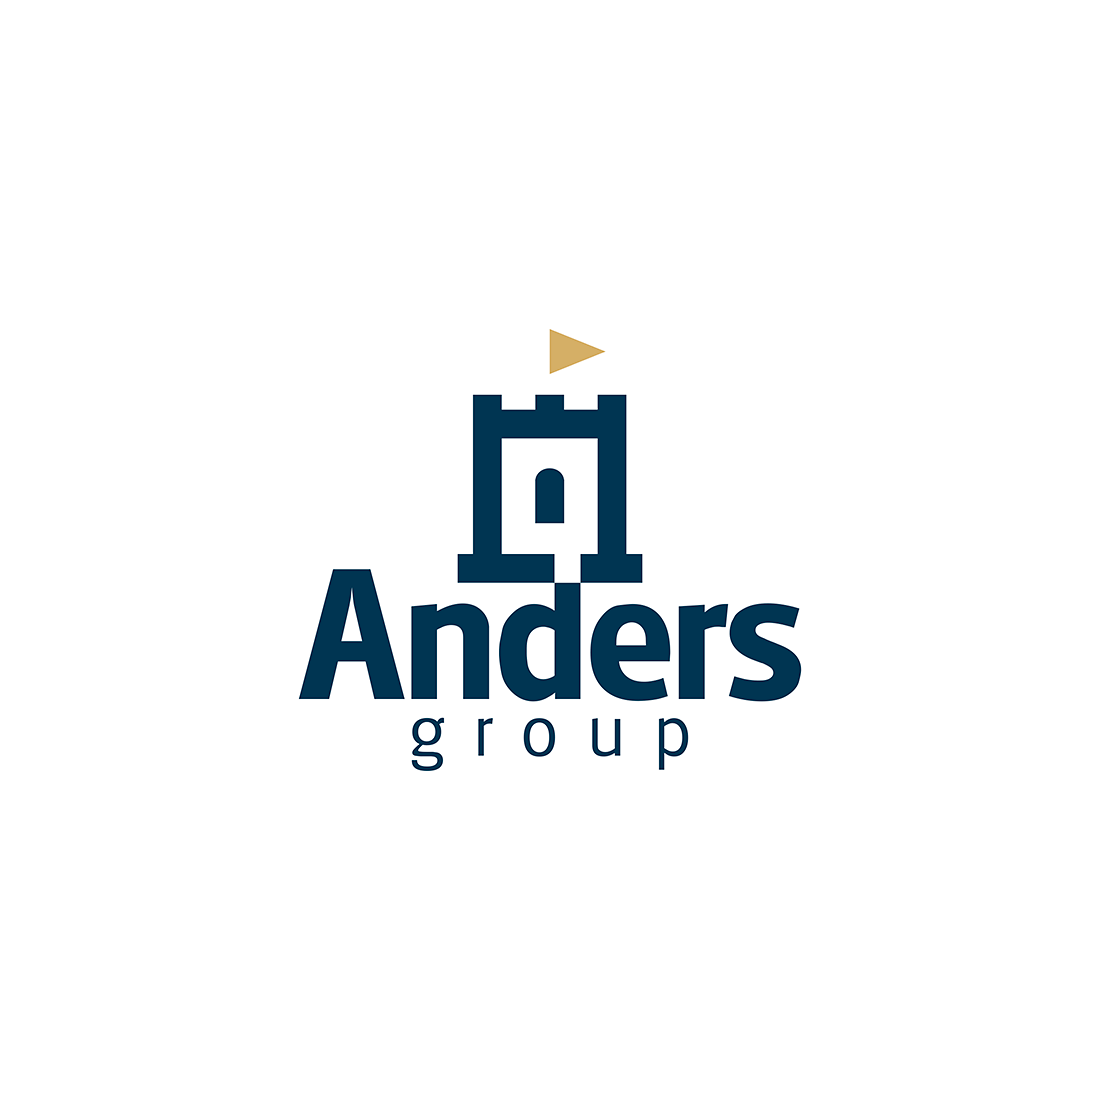 https://ponad.pl/wp-content/uploads/2015/01/ander-group-logo-on-white.png